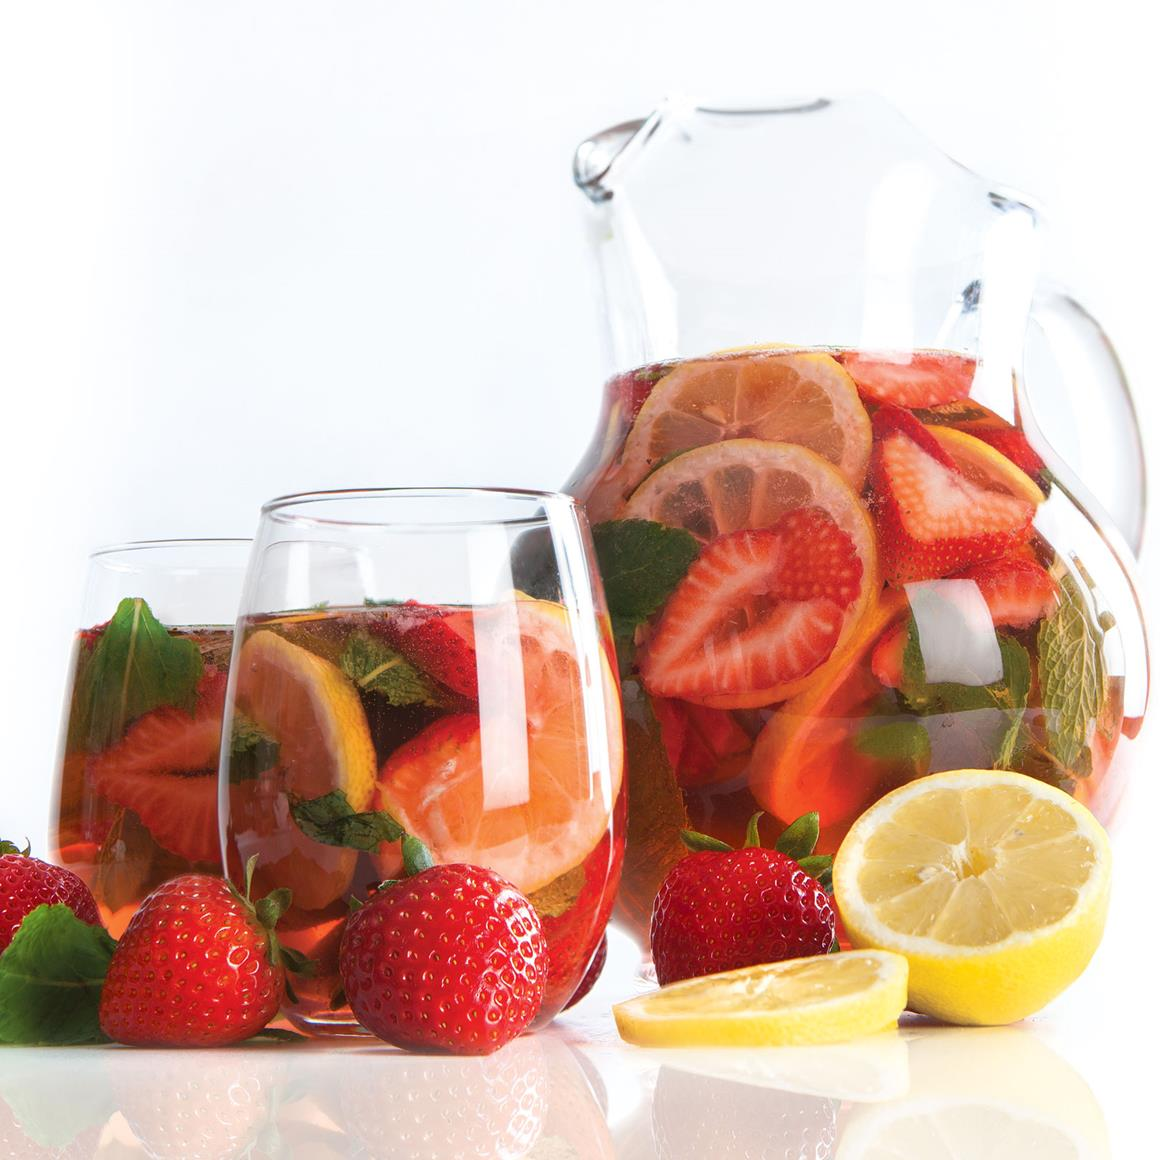 Rosé sangria in glasses and a pitcher with lemon and strawberries